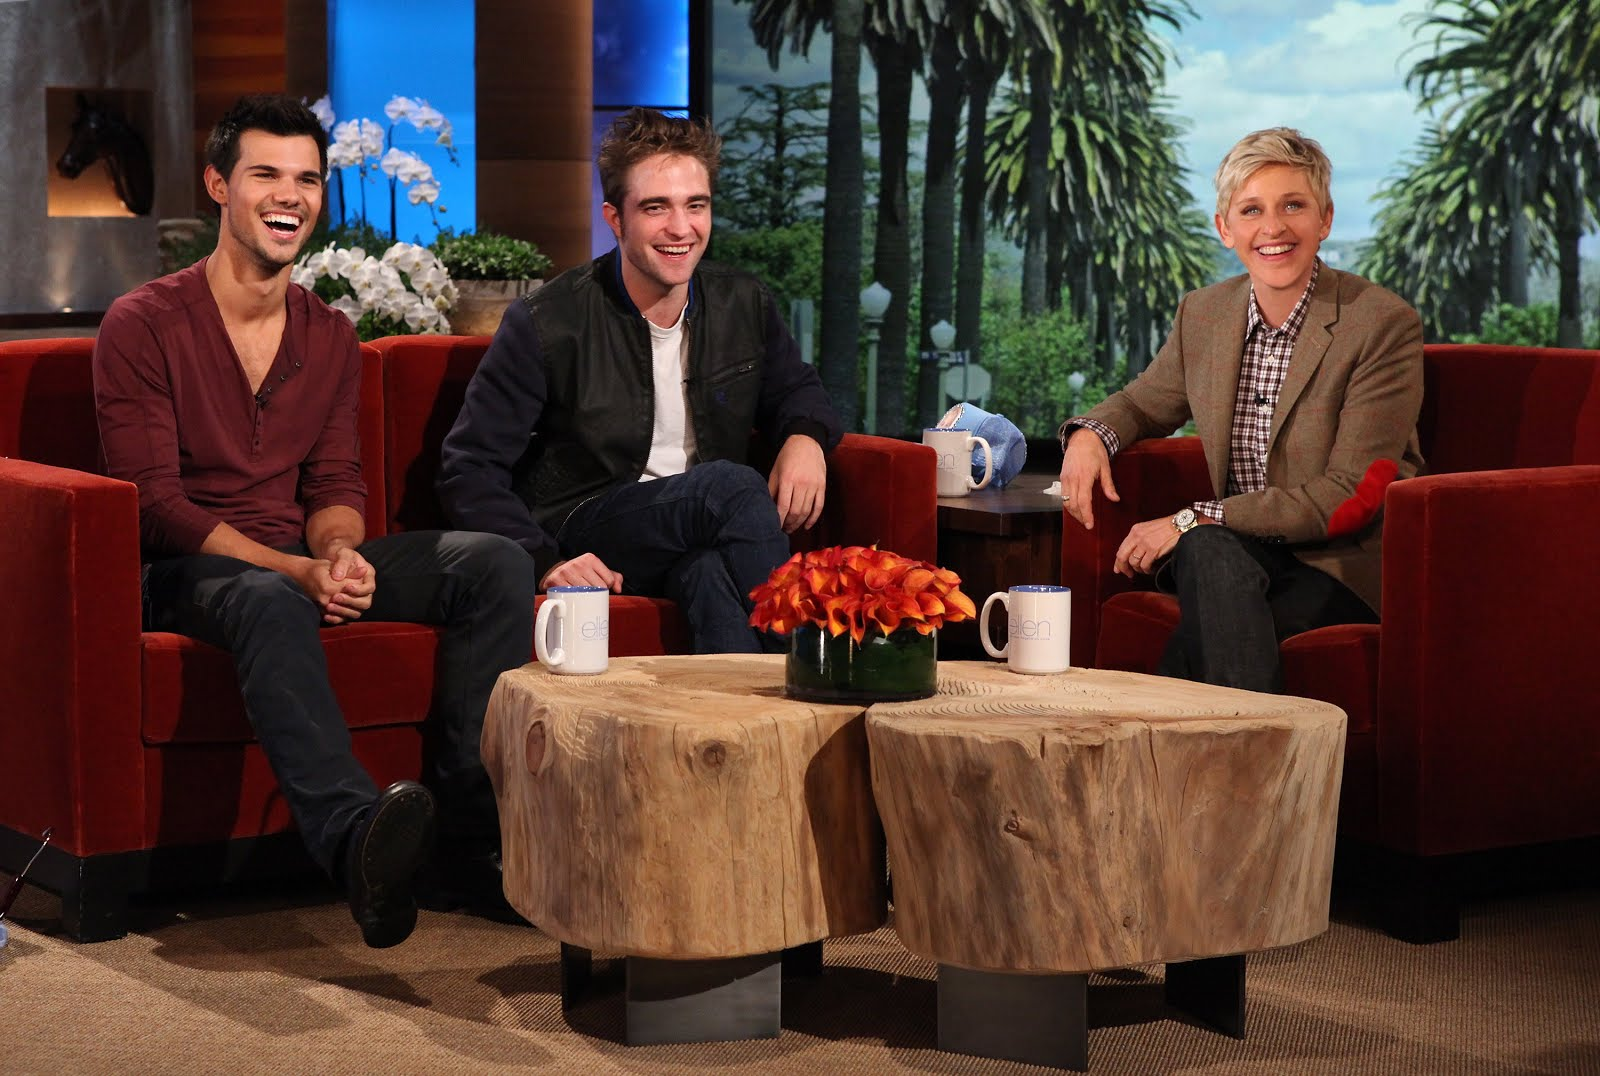 Team kristen stewart rob and taylor on the ellen degeneres show - Ellen show videos ...